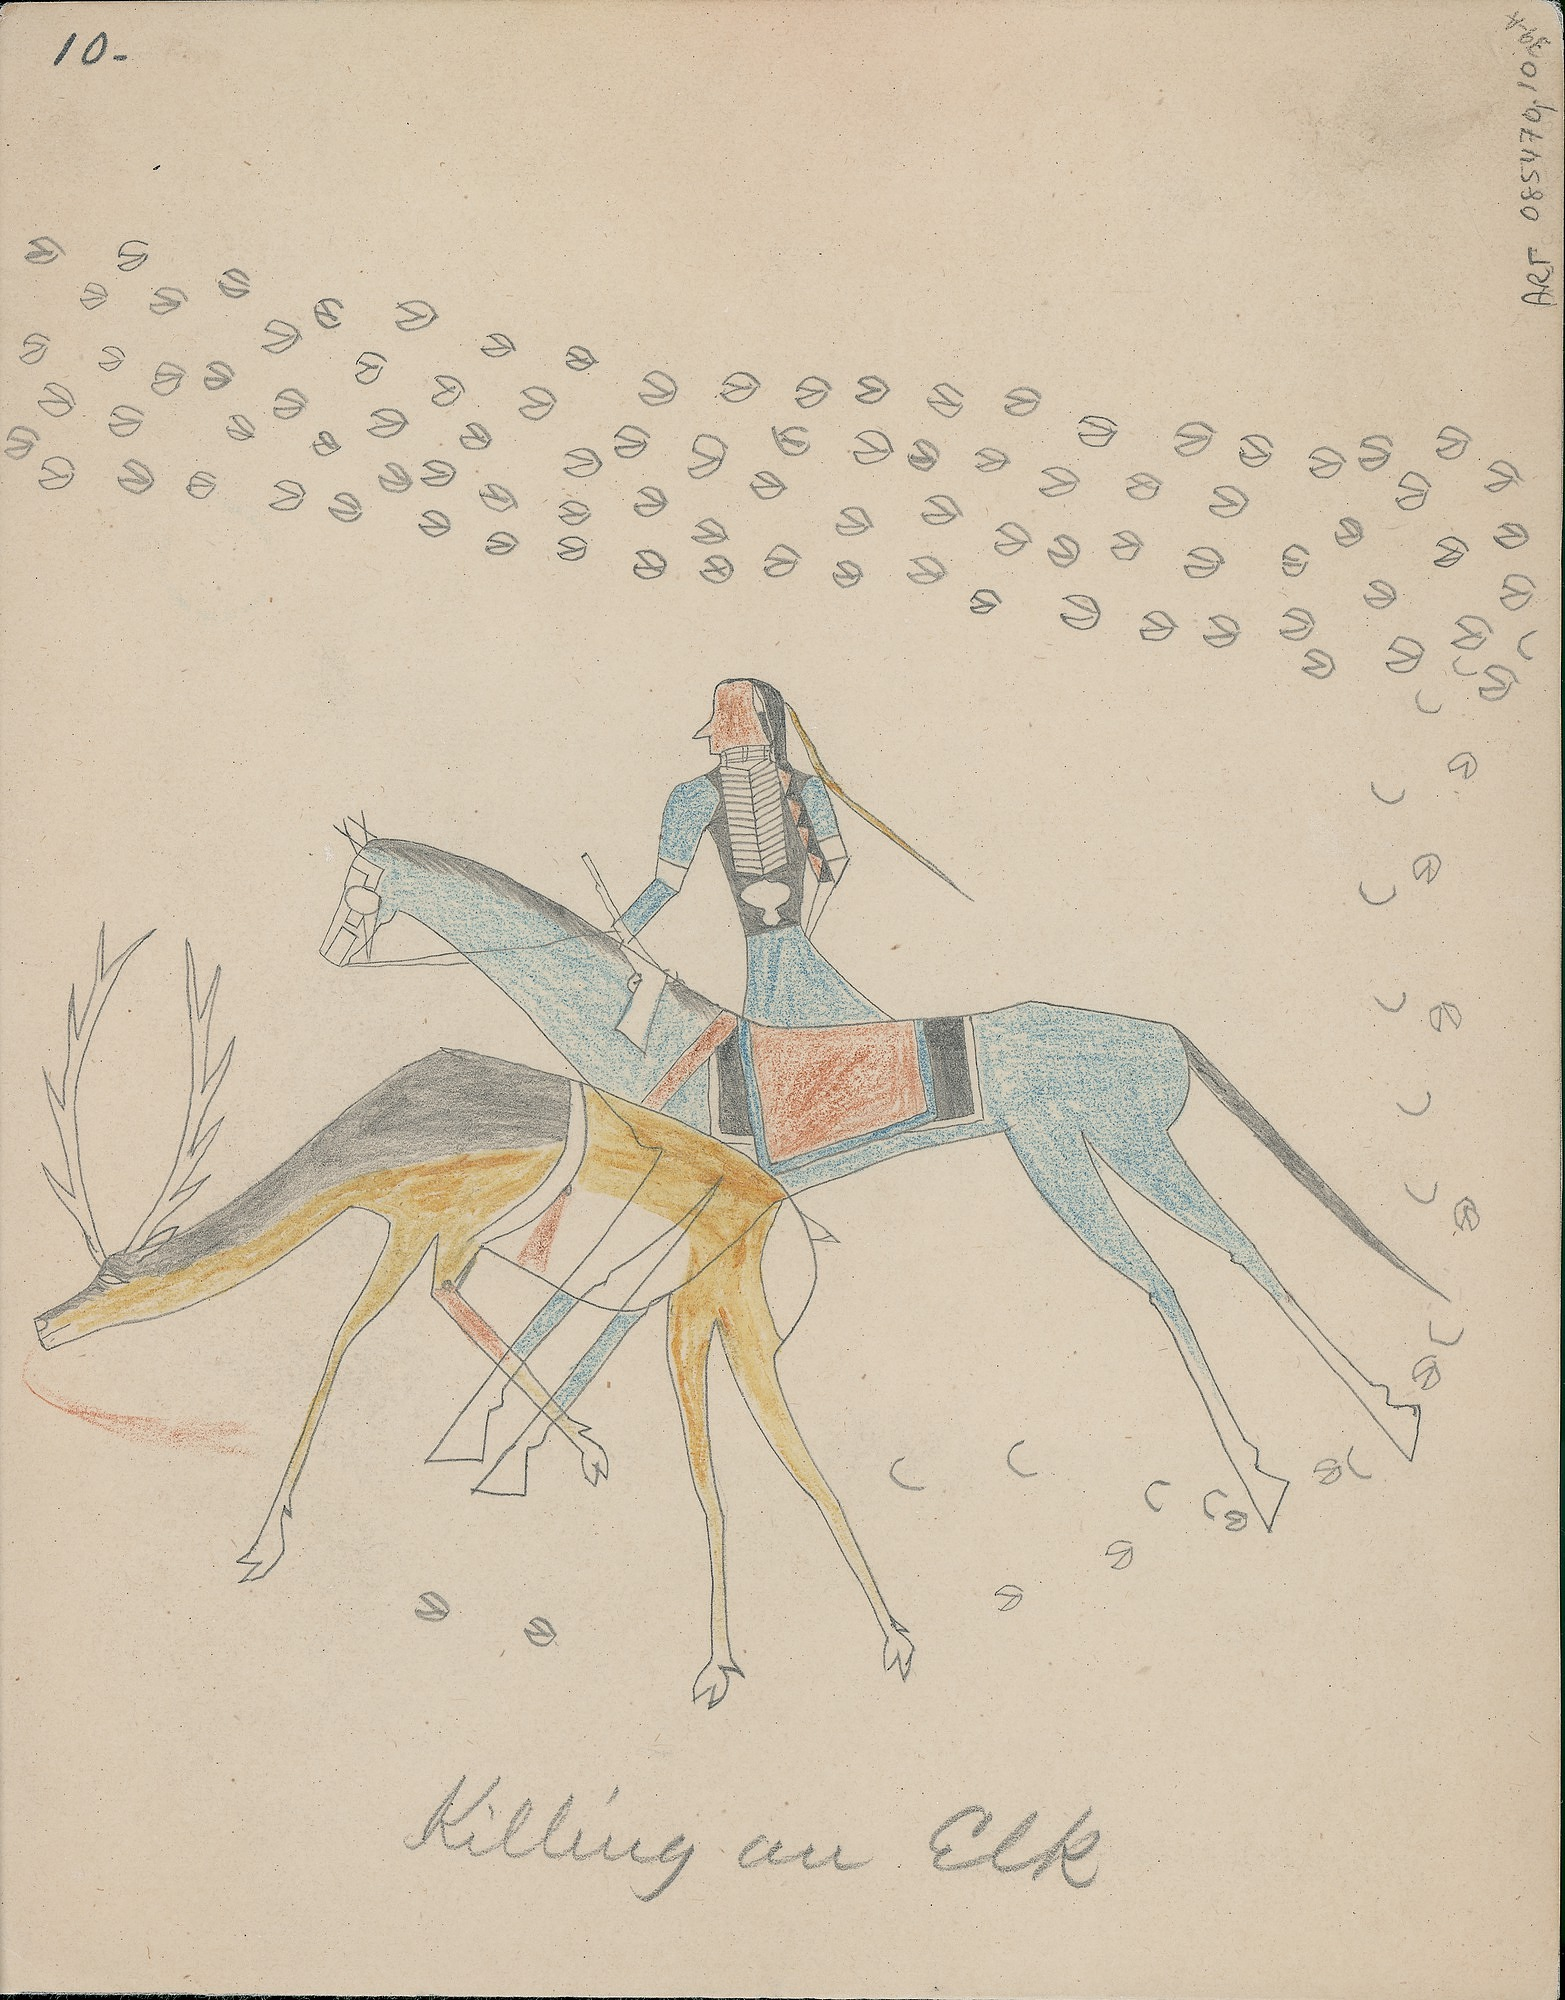 Anonymous Cheyenne drawing of mounted hunter pursuing wounded elk, 1875 August